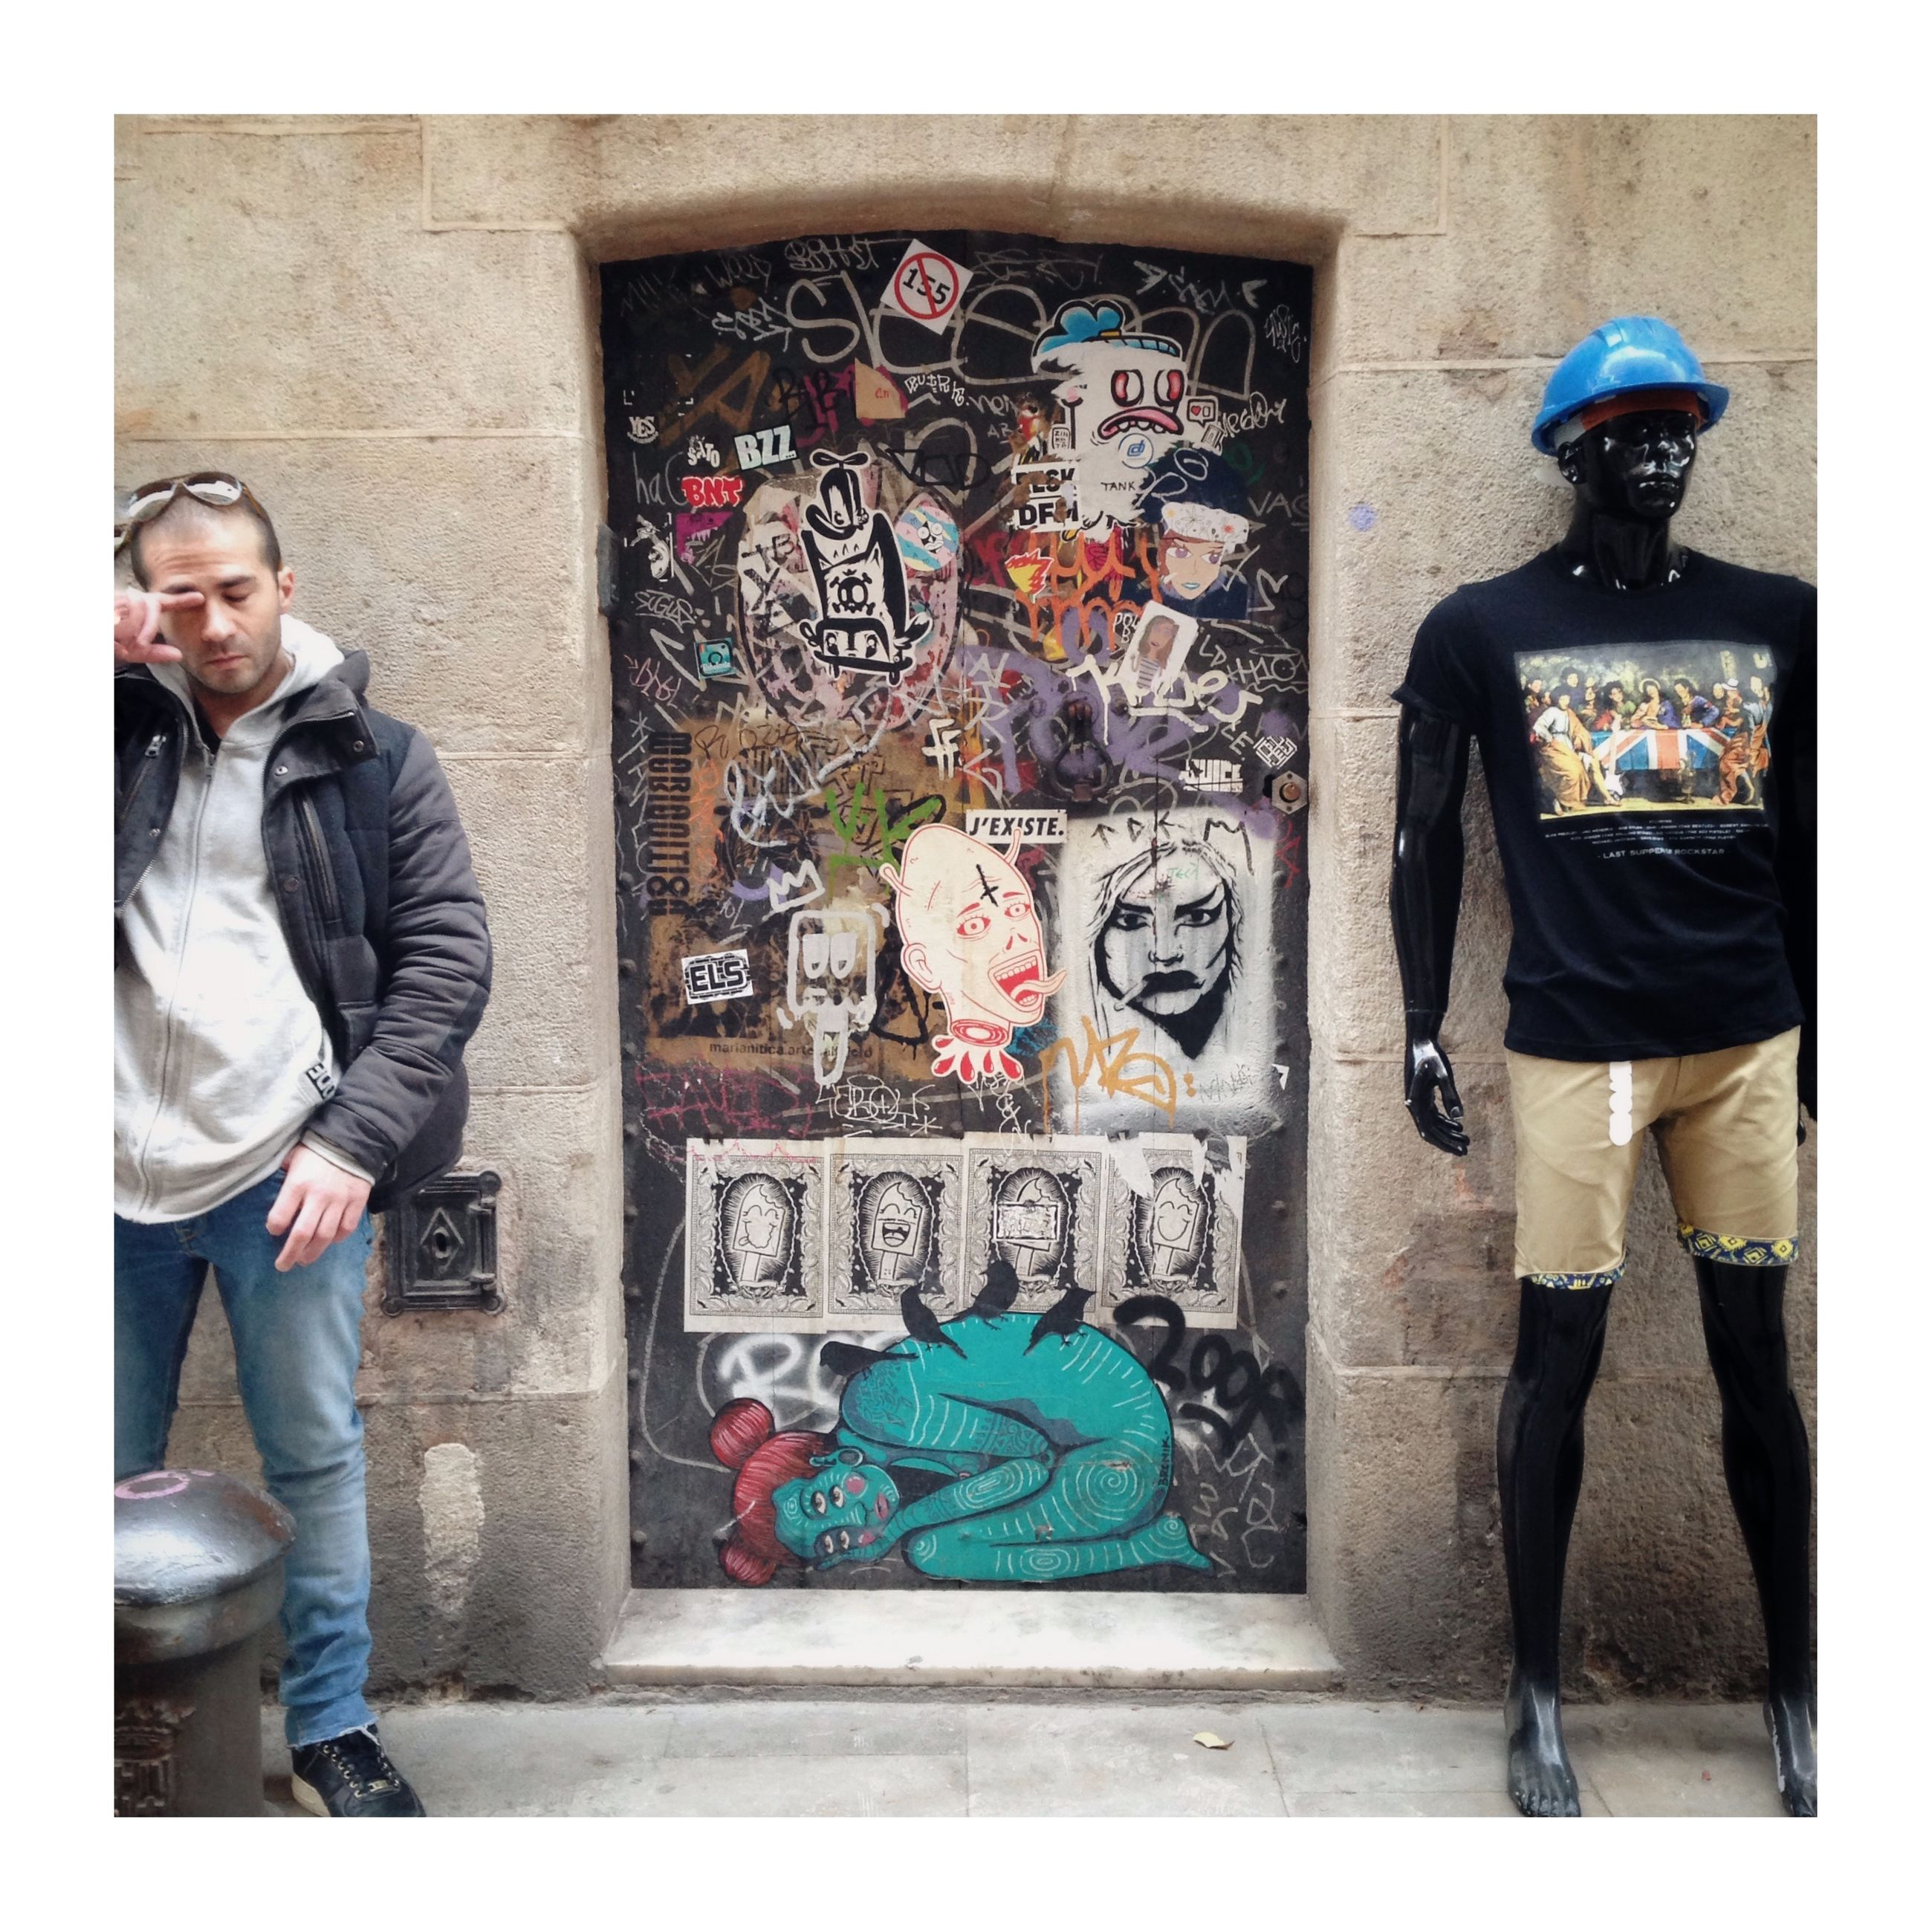 graffiti, standing, casual clothing, real people, young men, one person, full length, young adult, fashion, day, portrait, front view, looking at camera, outdoors, men, building exterior, lifestyles, architecture, adult, people